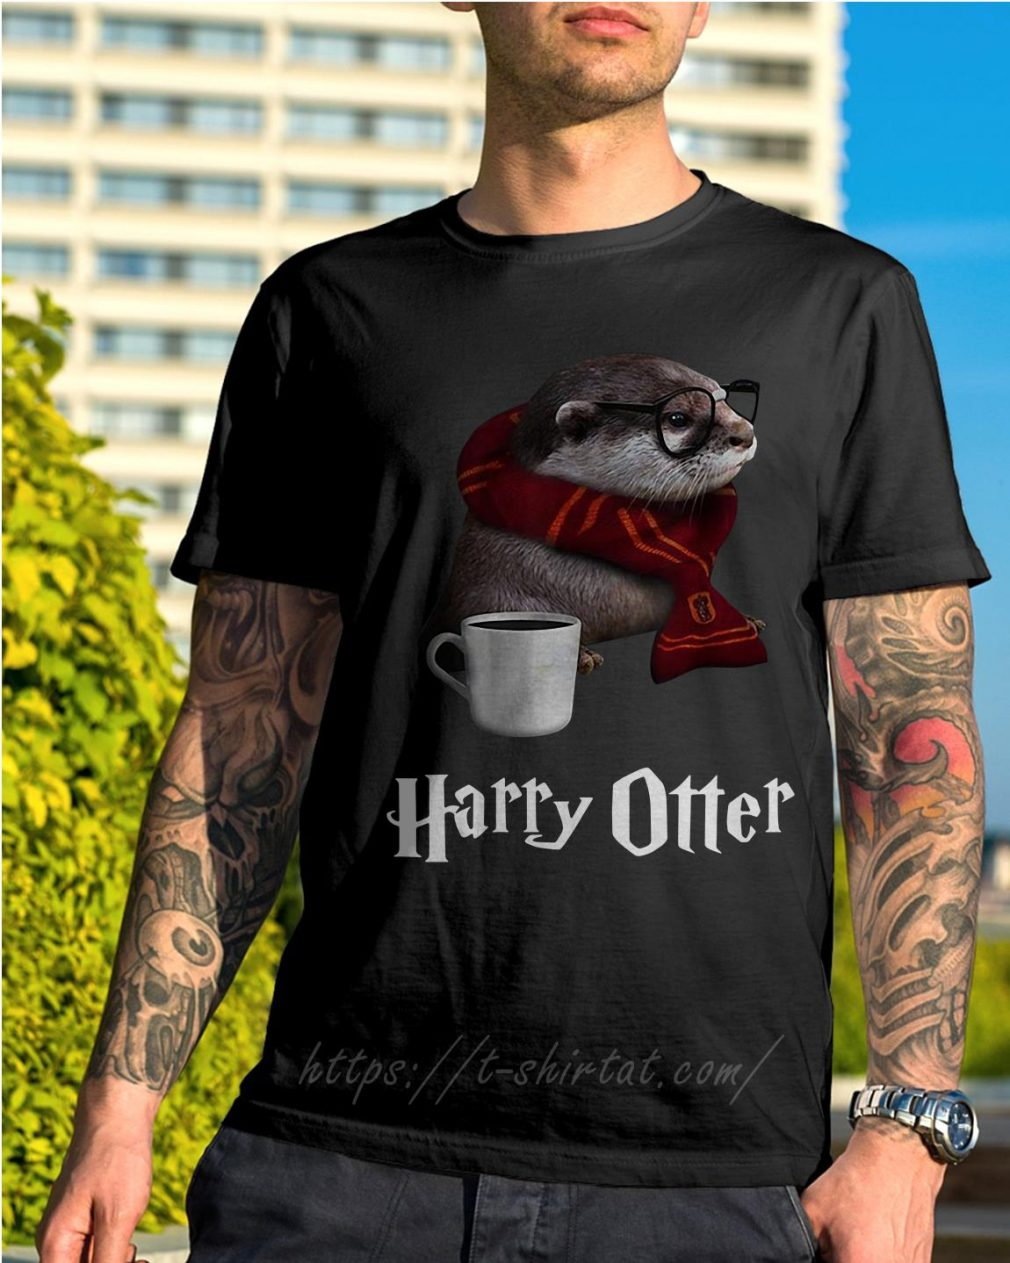 Harry Potter Harry Otter shirt